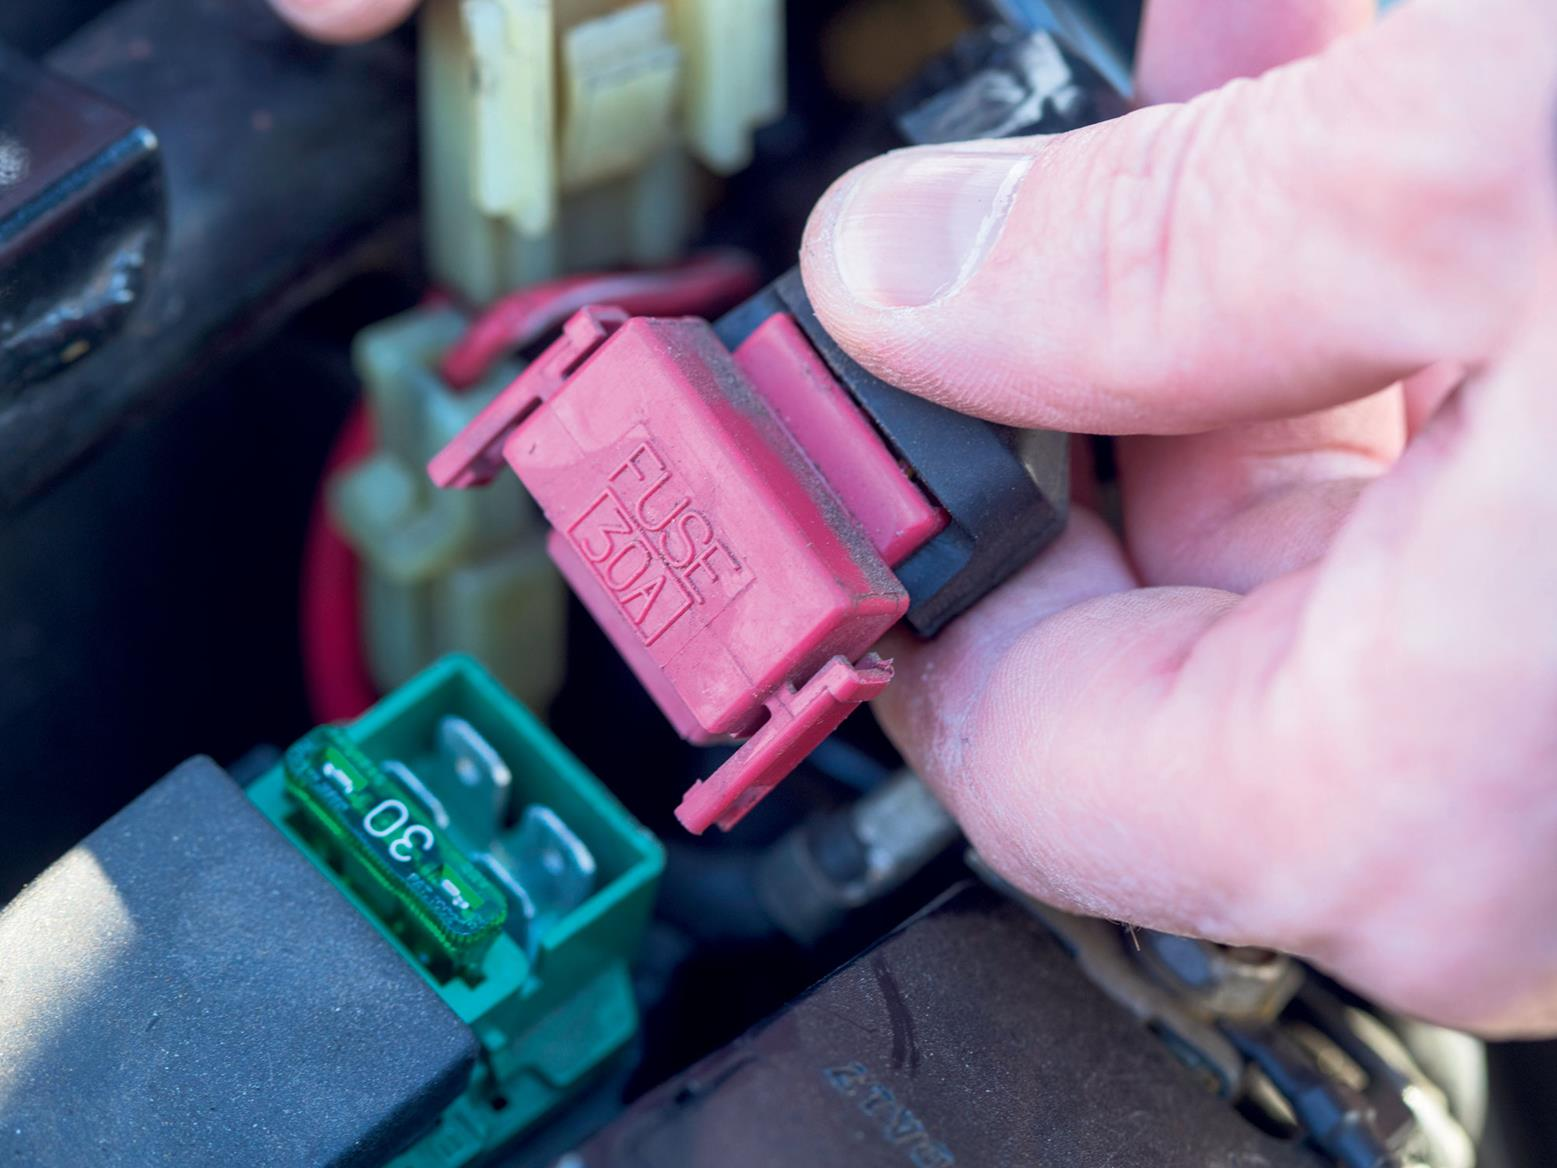 Check the solenoid switch